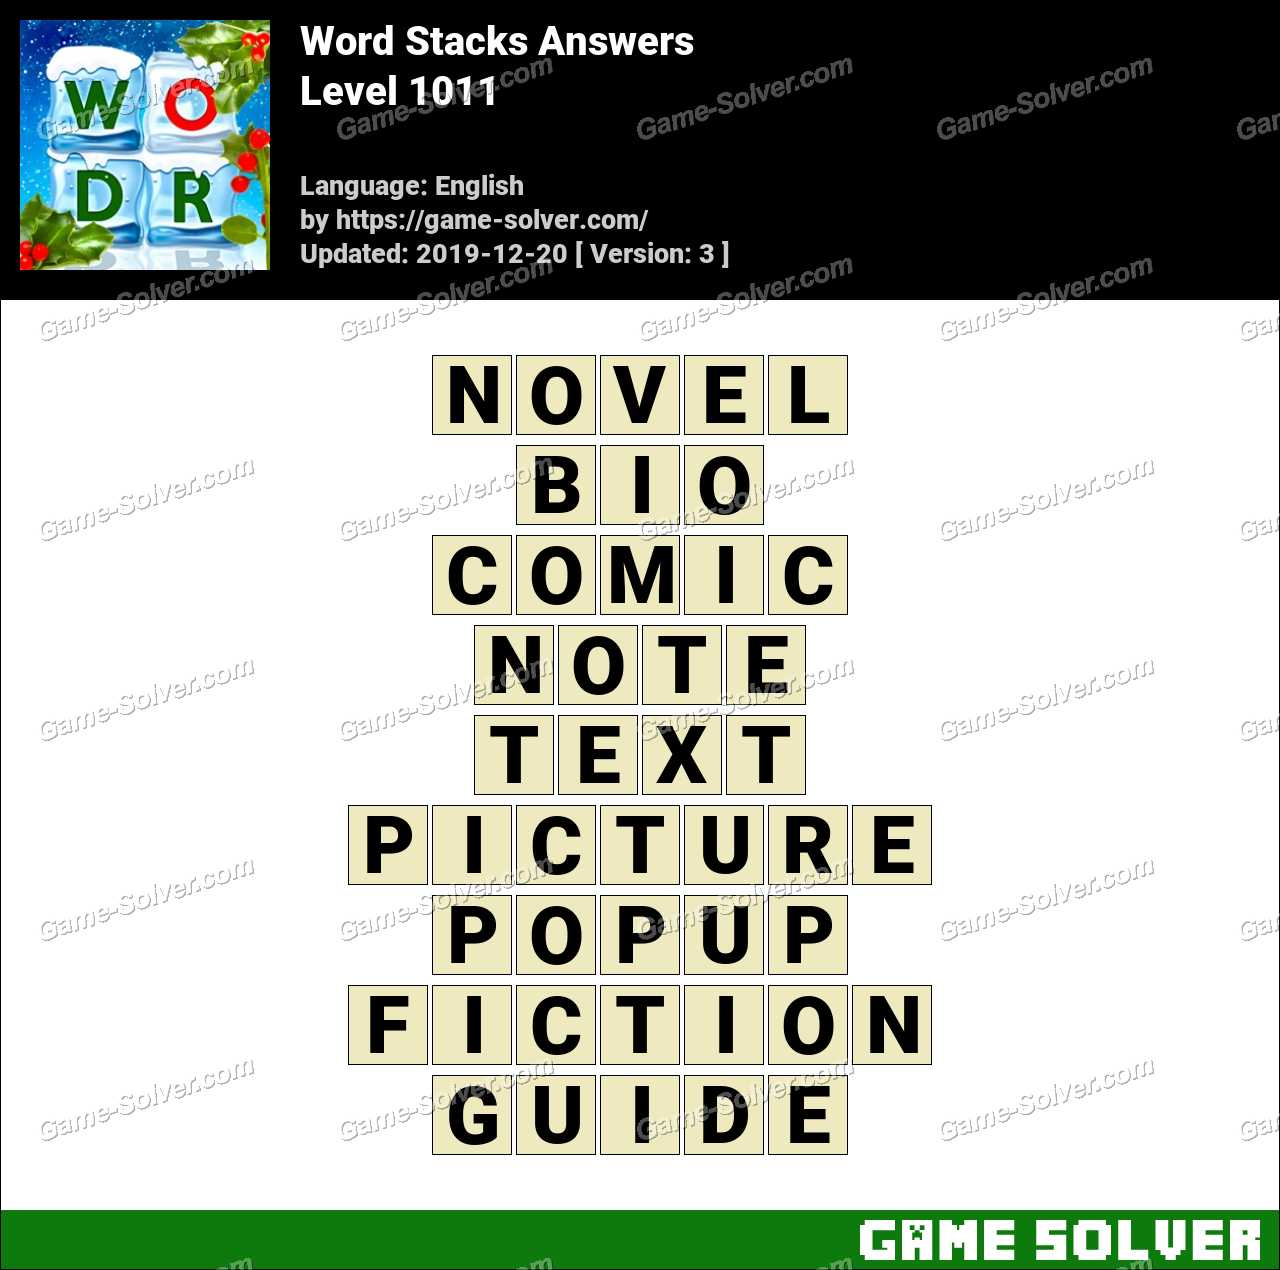 Word Stacks Level 1011 Answers